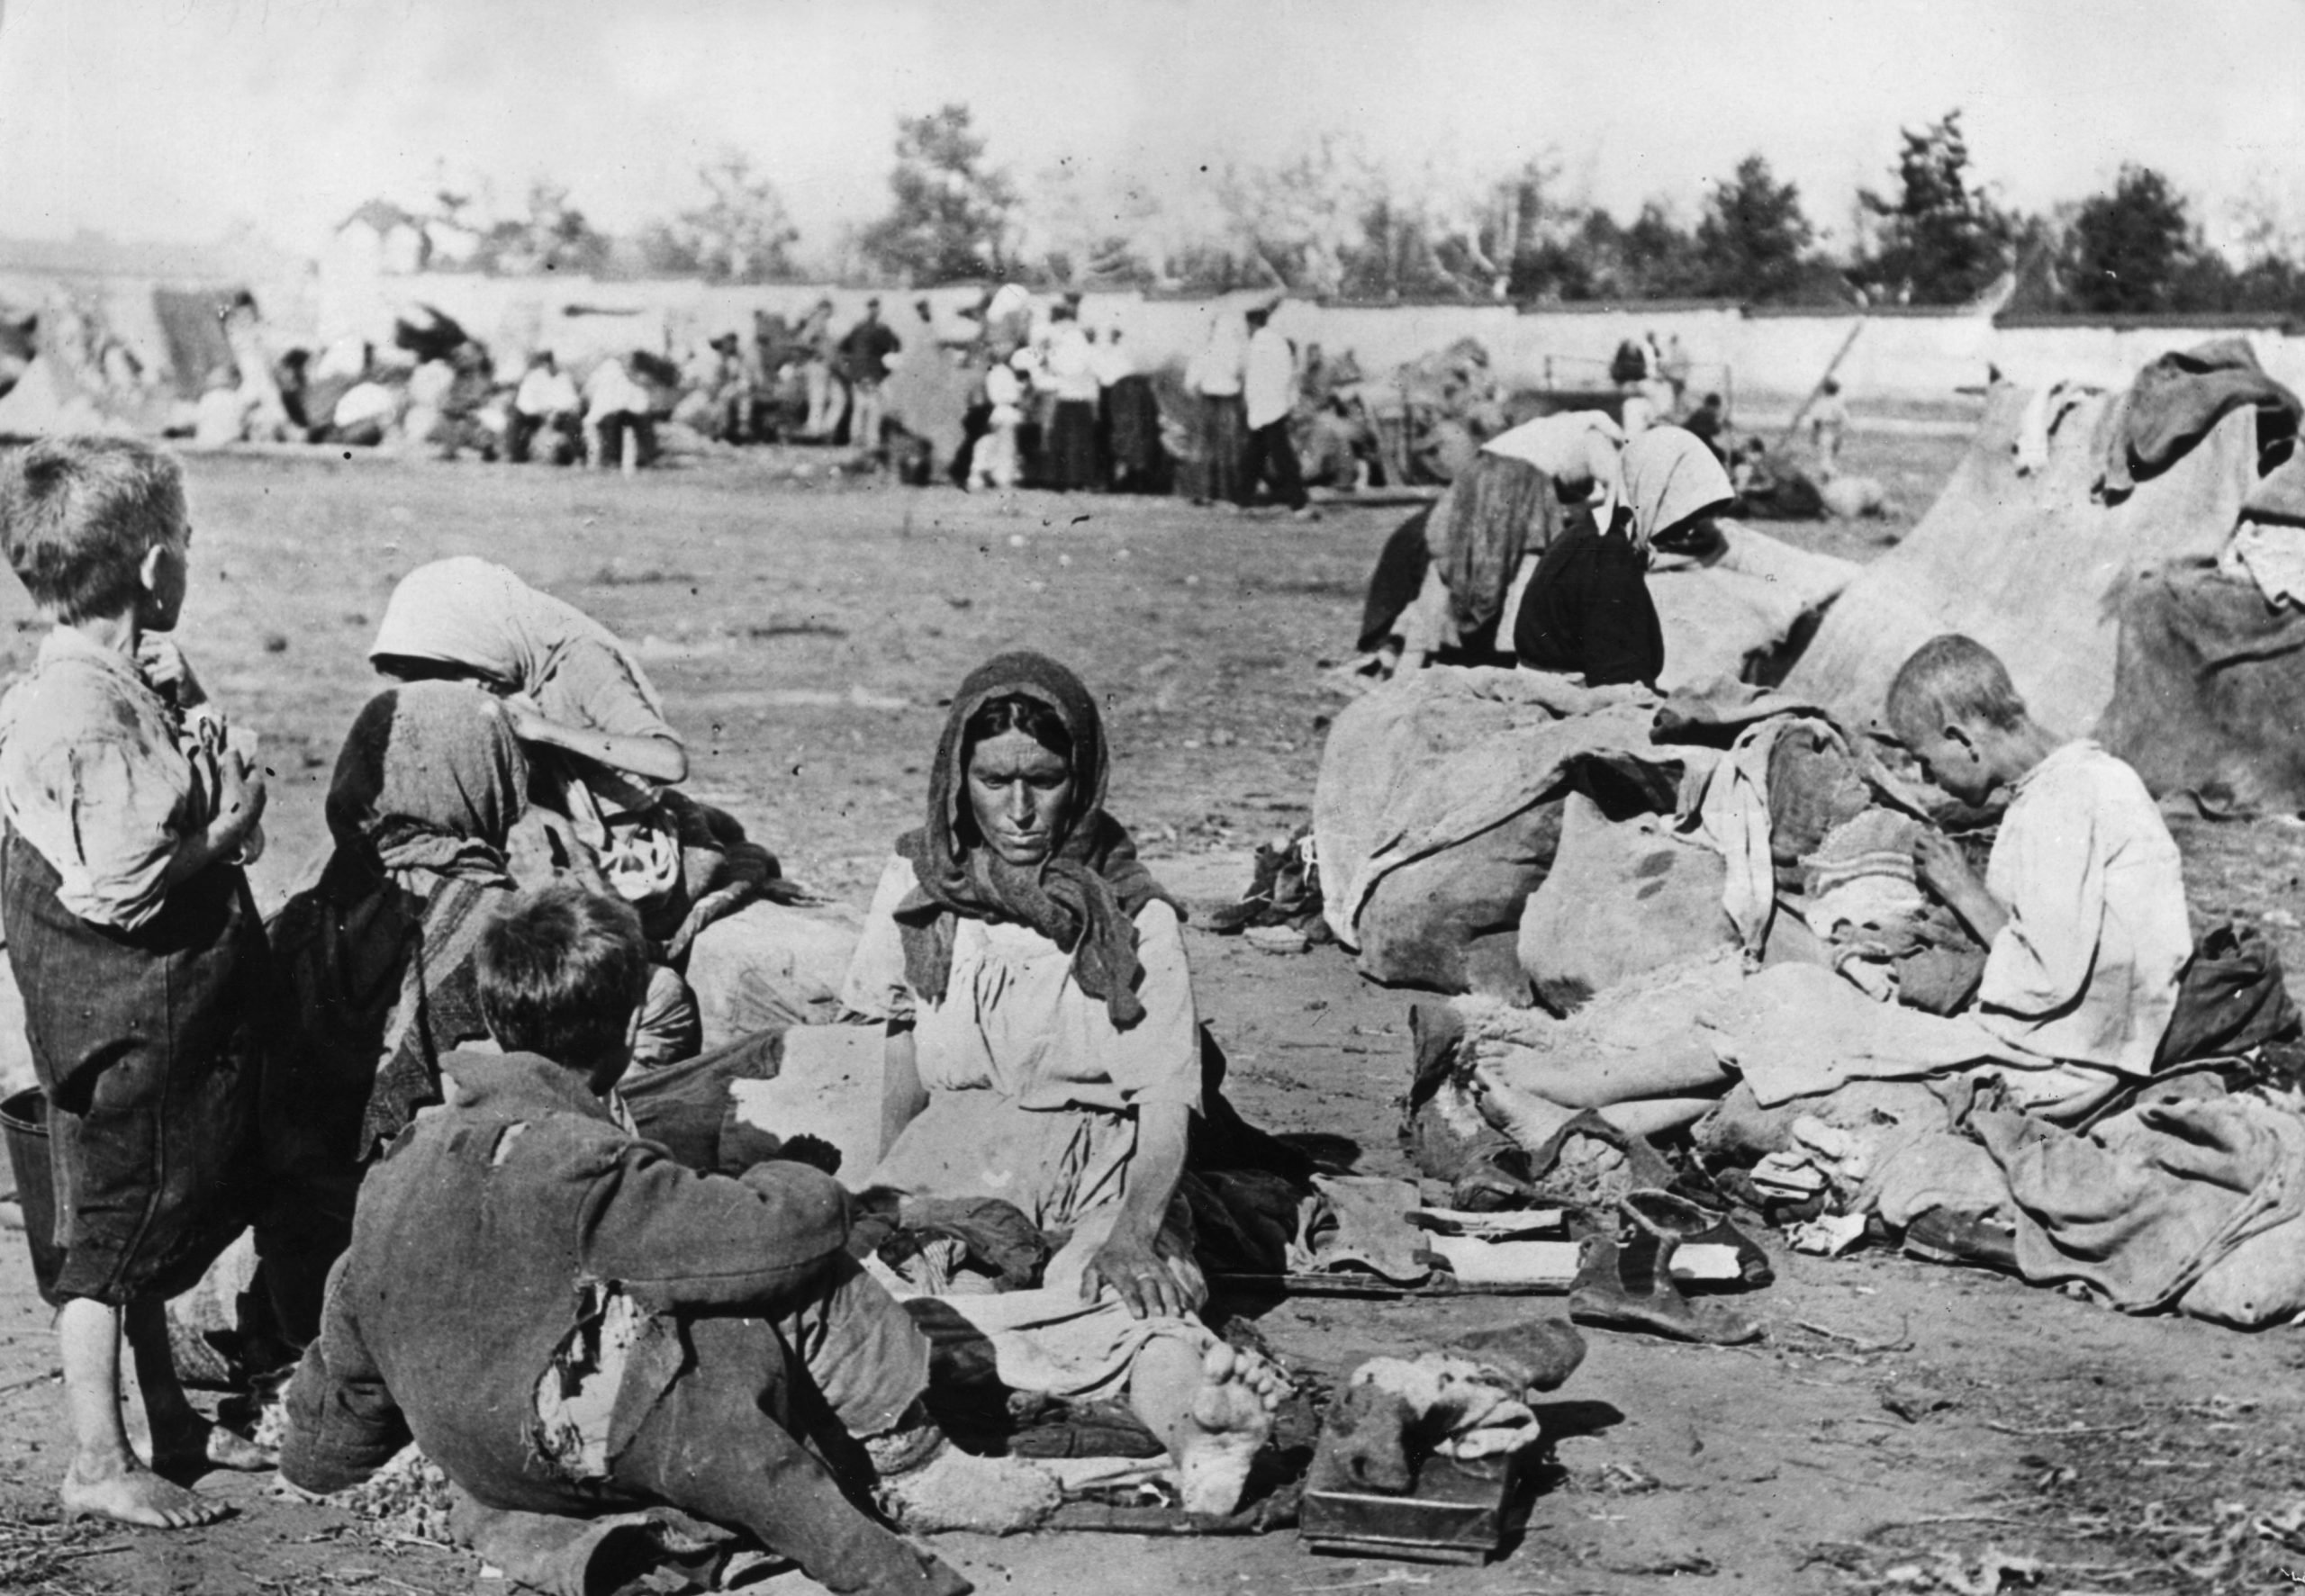 October 1921: Ragged and barefoot, starving Russian families in the Volga area during the Russian Famine.